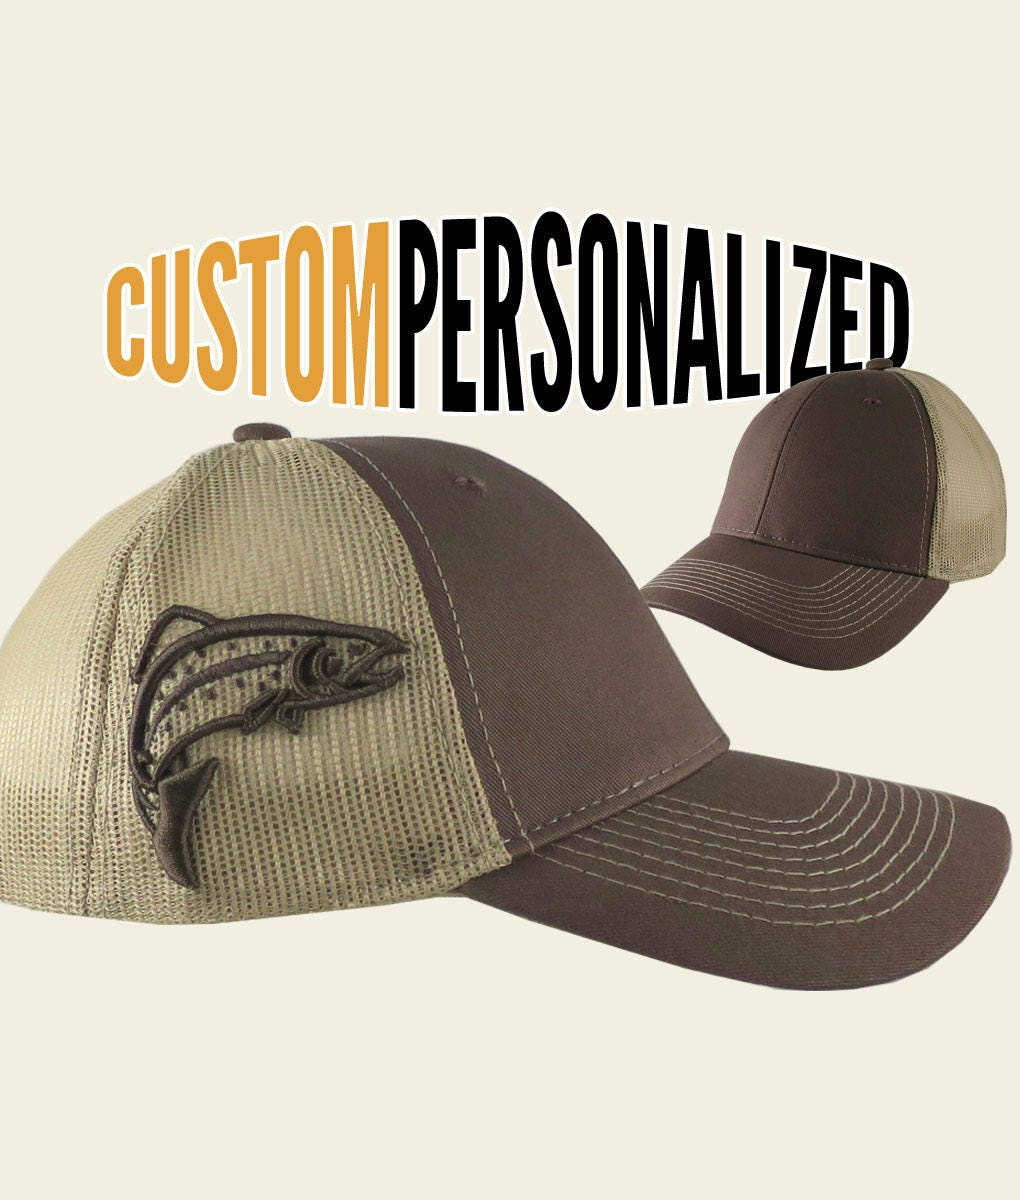 483e0830f2f92 Custom Personalized Trout 3D Puff Raised Embroidery on an Adjustable Full  Fit Brown Trucker Cap and Your Choice of Front Decors Fishing Hat